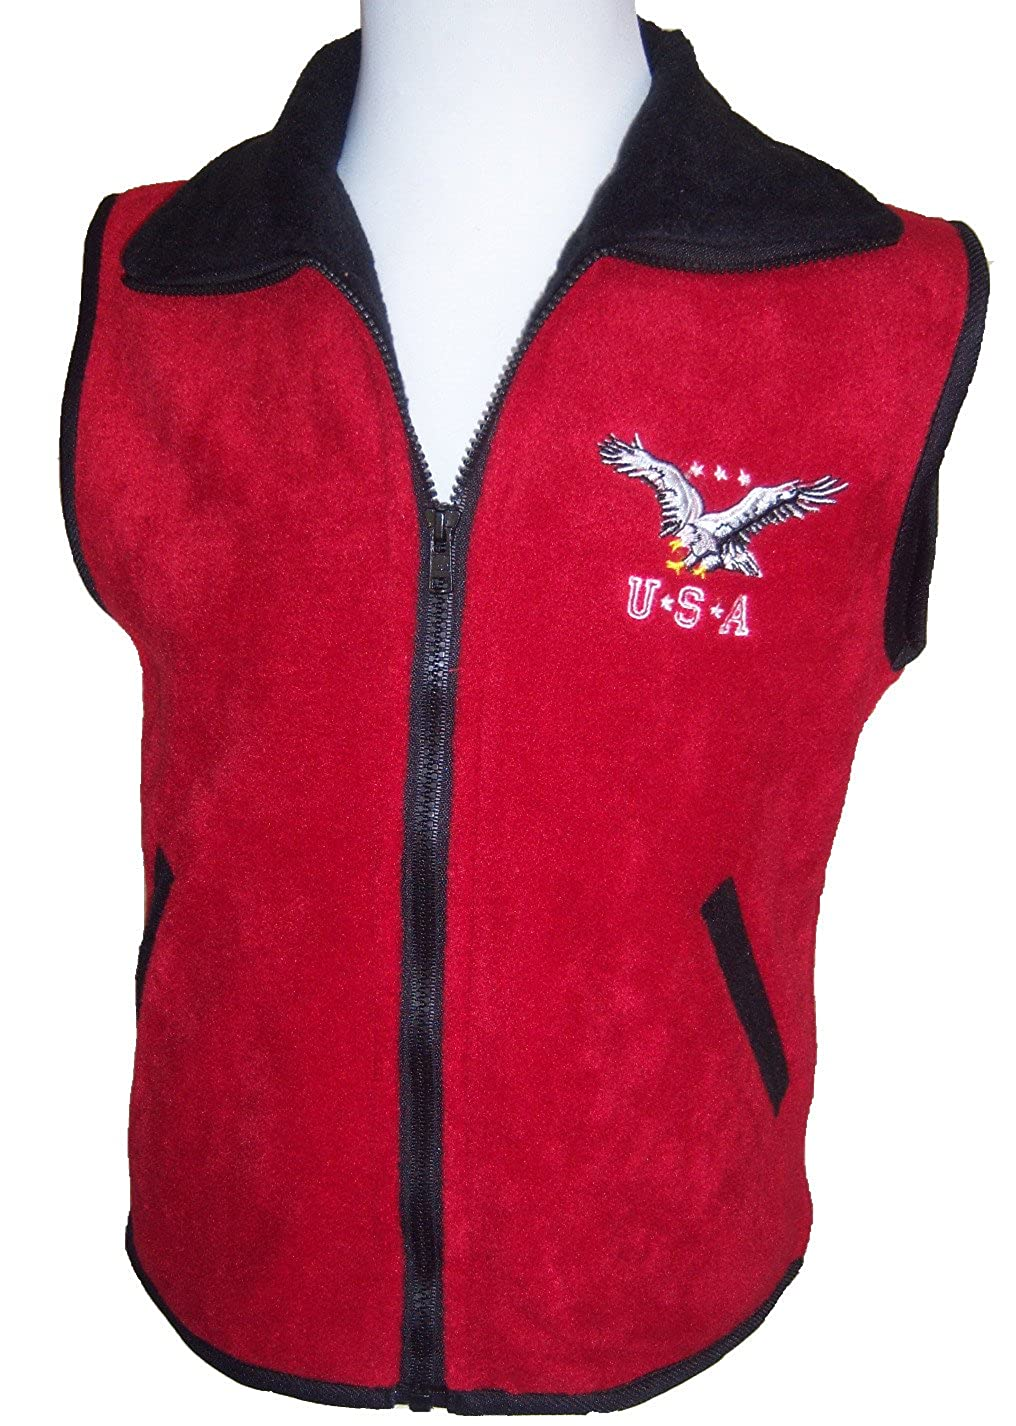 J.J. Coolwear Boys Girls Eagle Embroidery Vest Outerwear Size: 4 - 6x/7